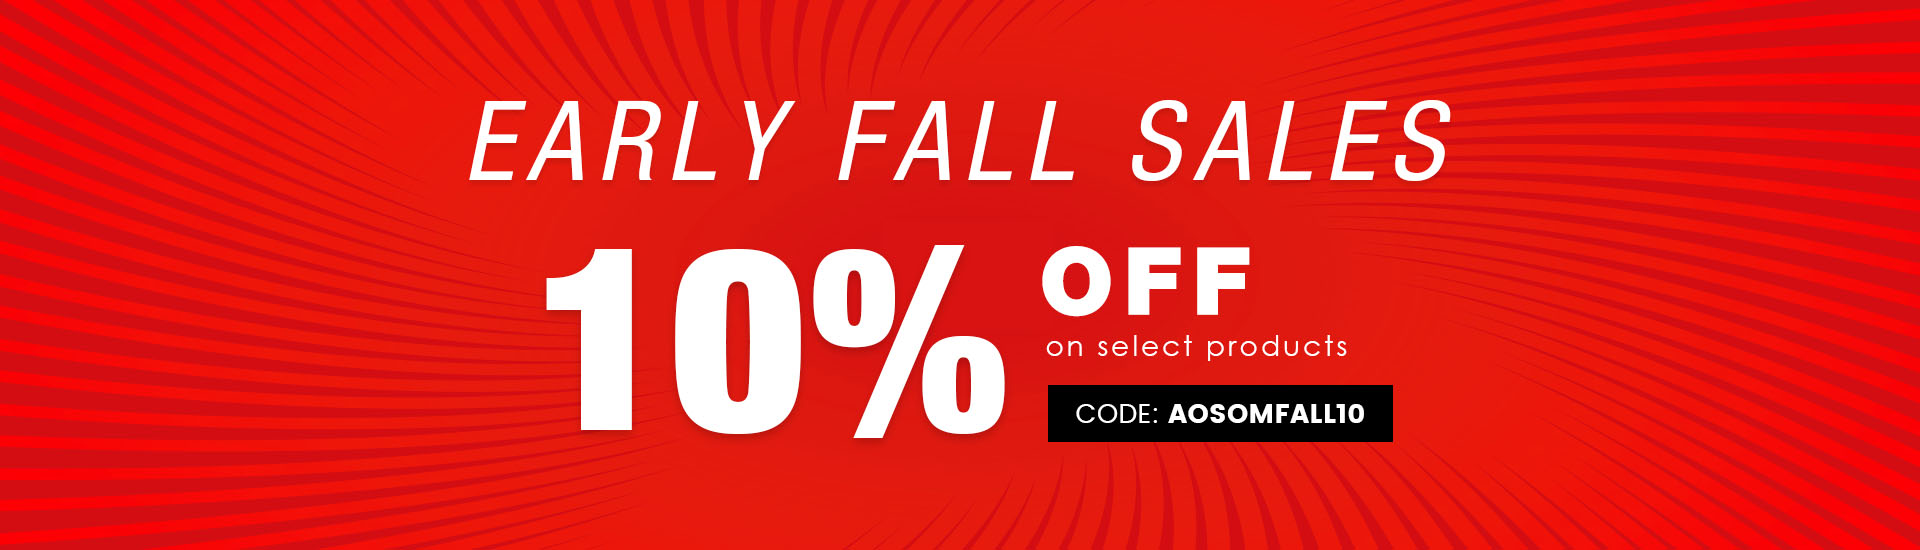 early fall sales